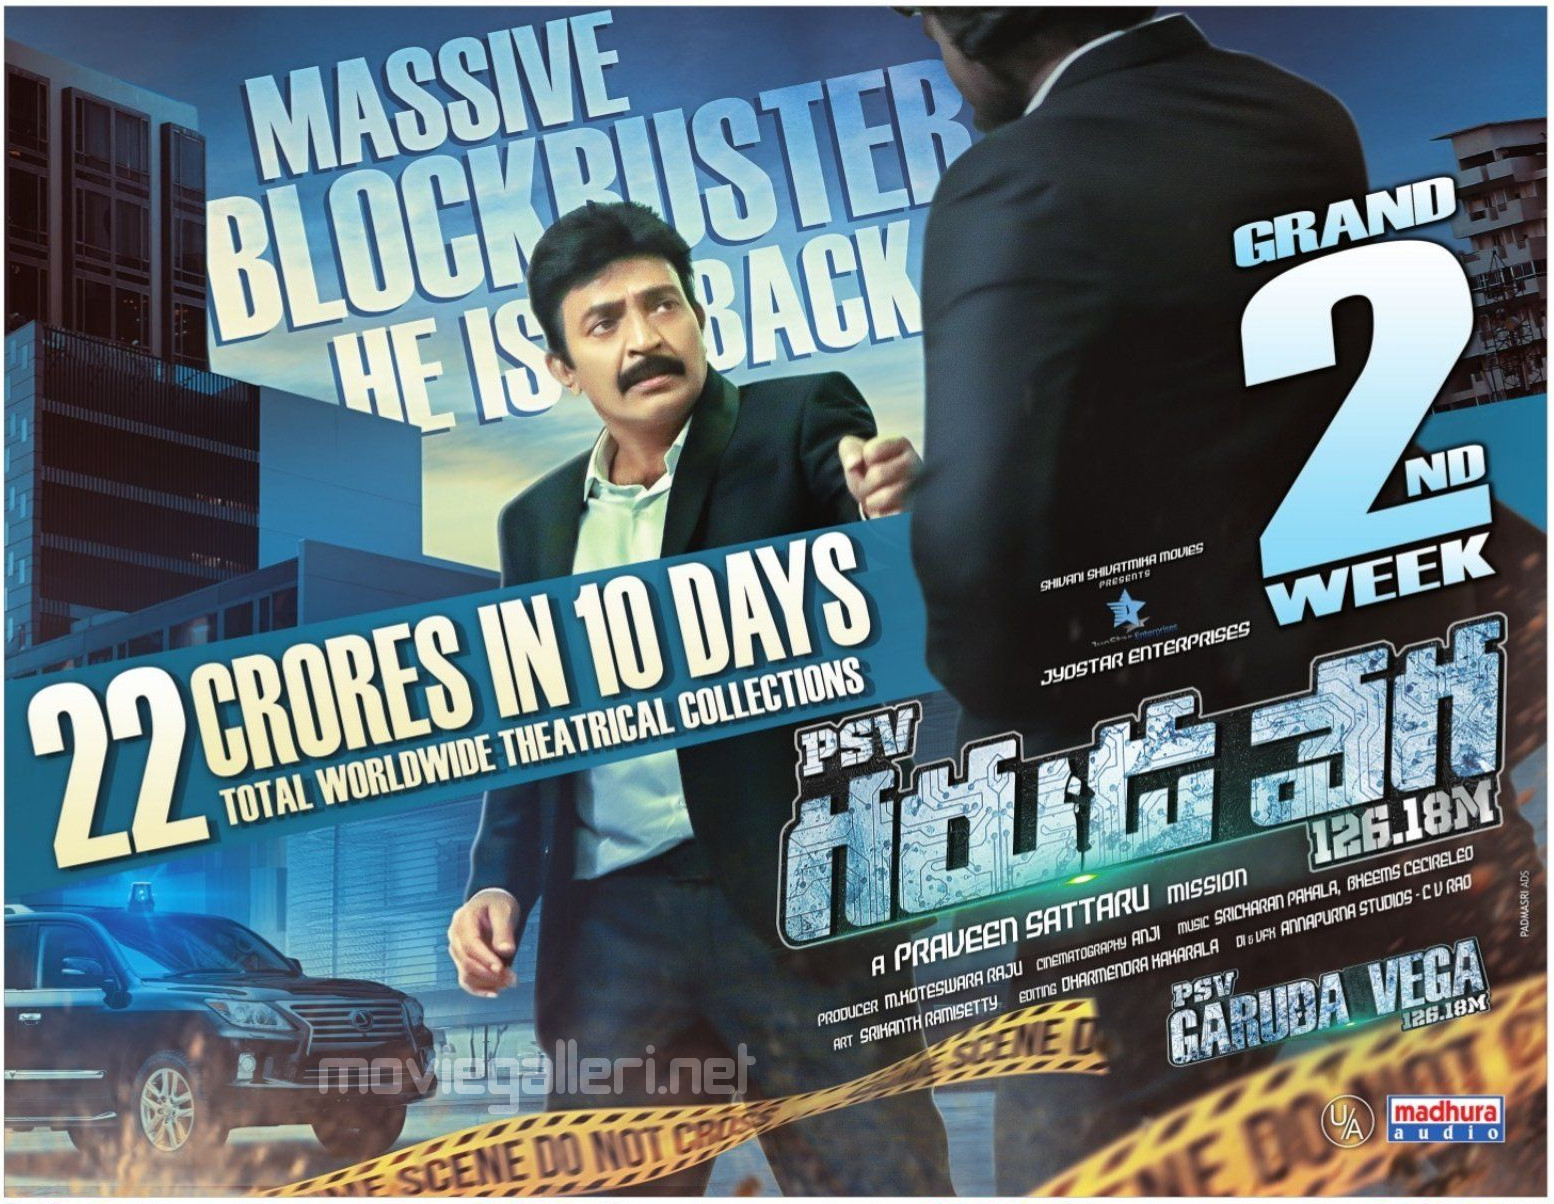 Rajasekhar PSV Garuda Vega 22 Crores in 10 Days Wallpaper